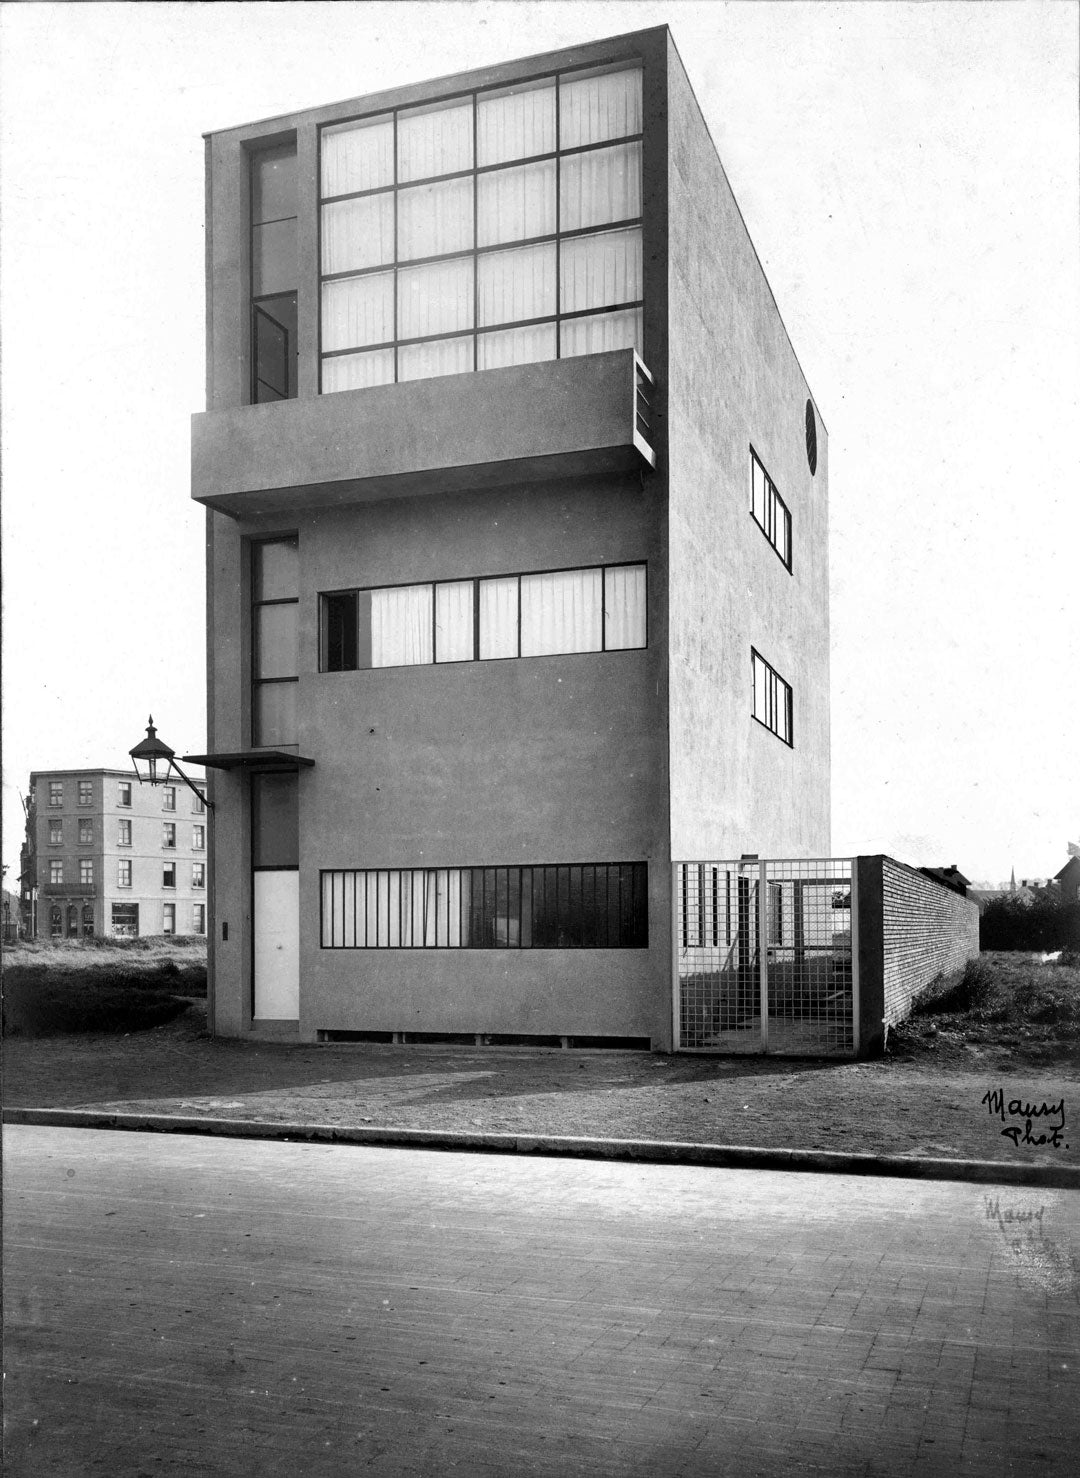 Street view of Le Corbusier's Maison Guiette building in Antwerp Belgium